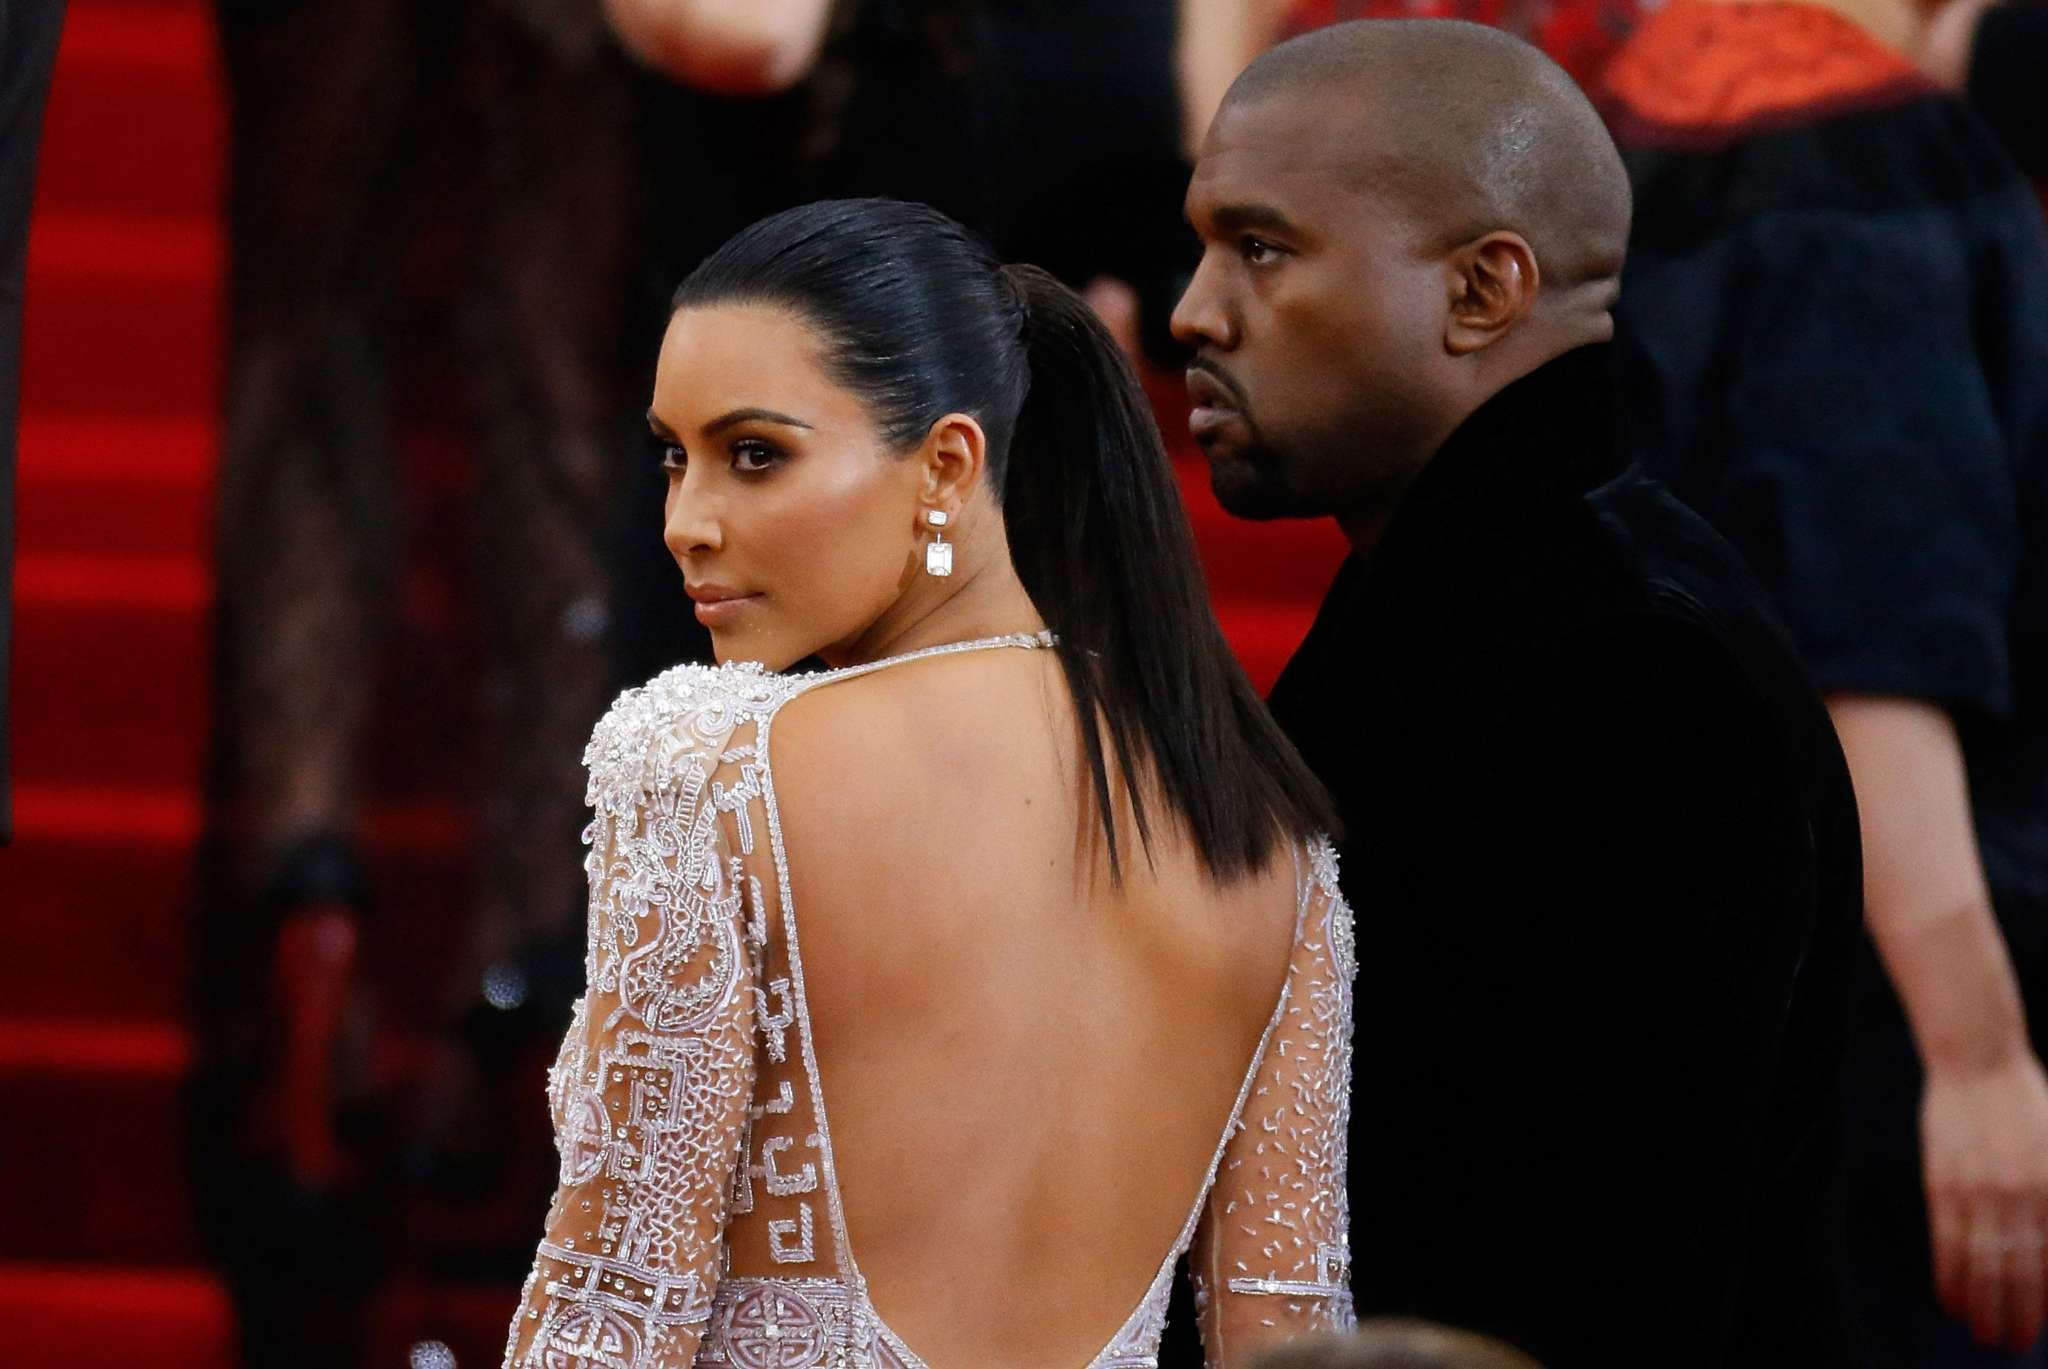 KUWTK: Kim Kardashian Going Through A 'Really Tough Time' Amid Husband Kanye West's 'Embarrassing' Social Media Rants – Here's Why!